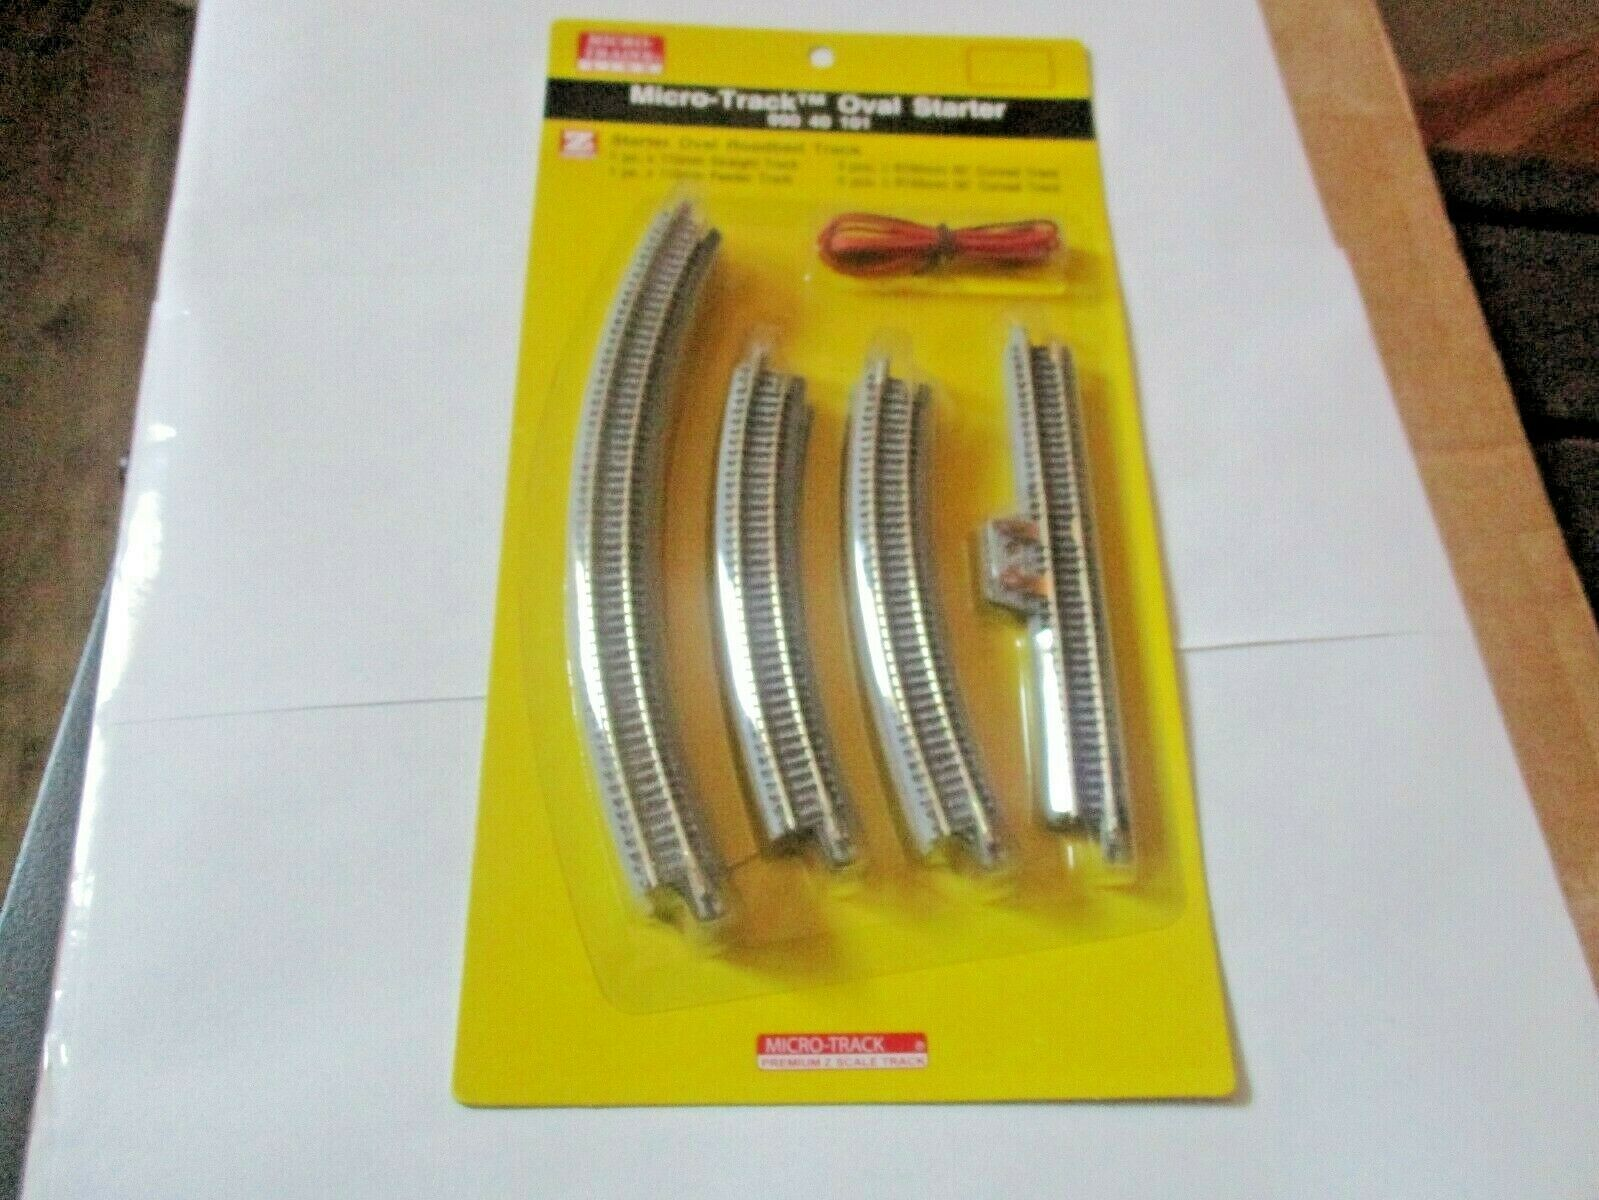 Micro-Trains Micro-Track # 99040101 Track Oval Starter Set Z-Scale